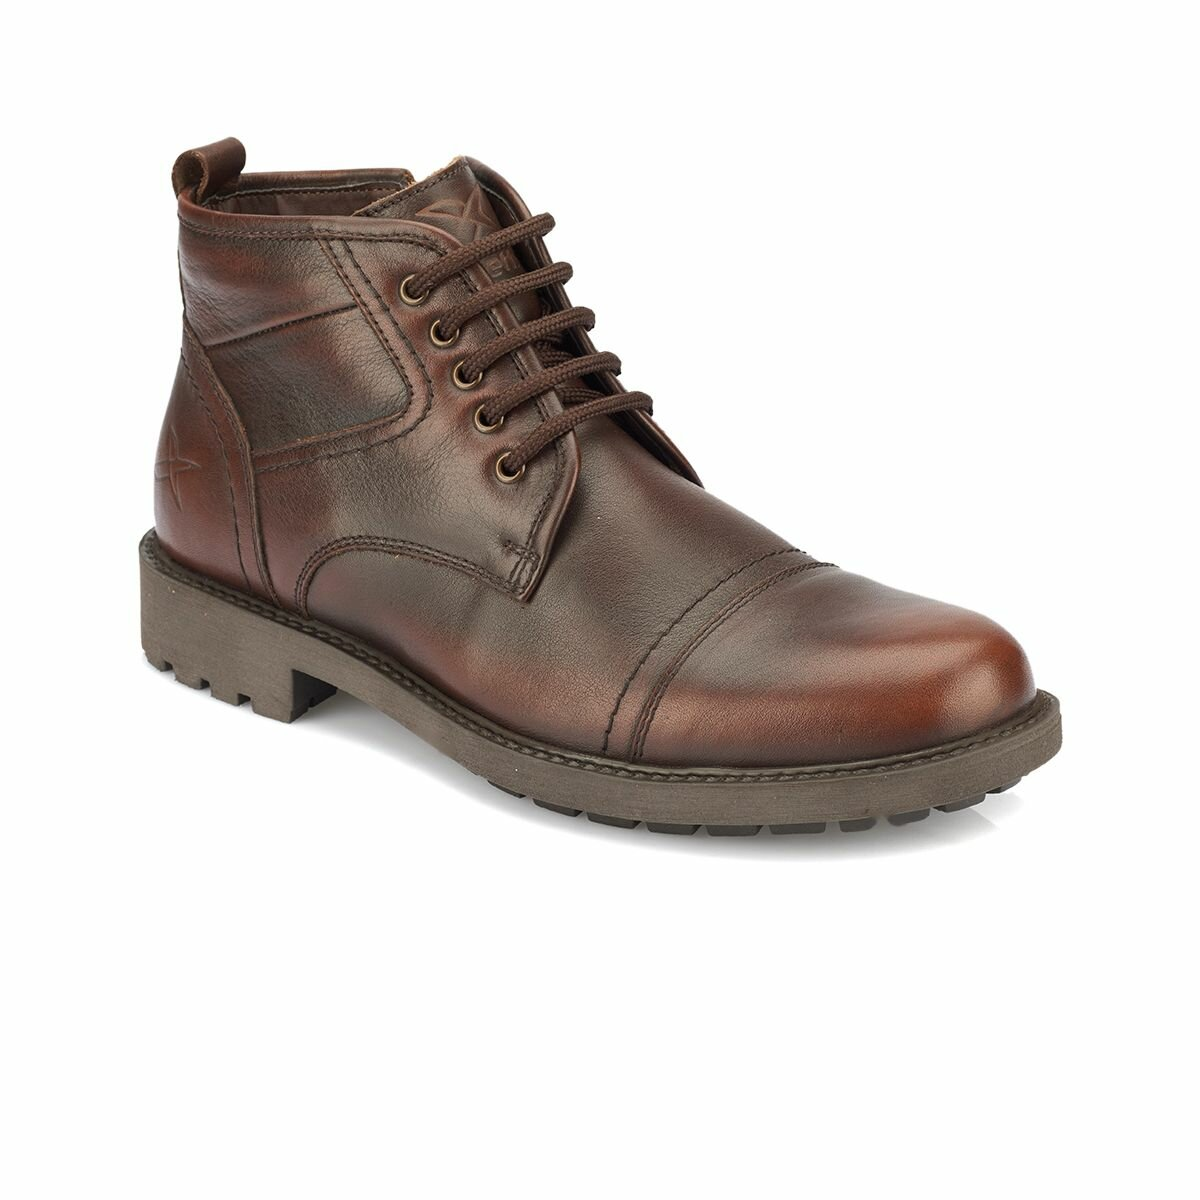 FLO ARALT Brown Men Boots KINETIX